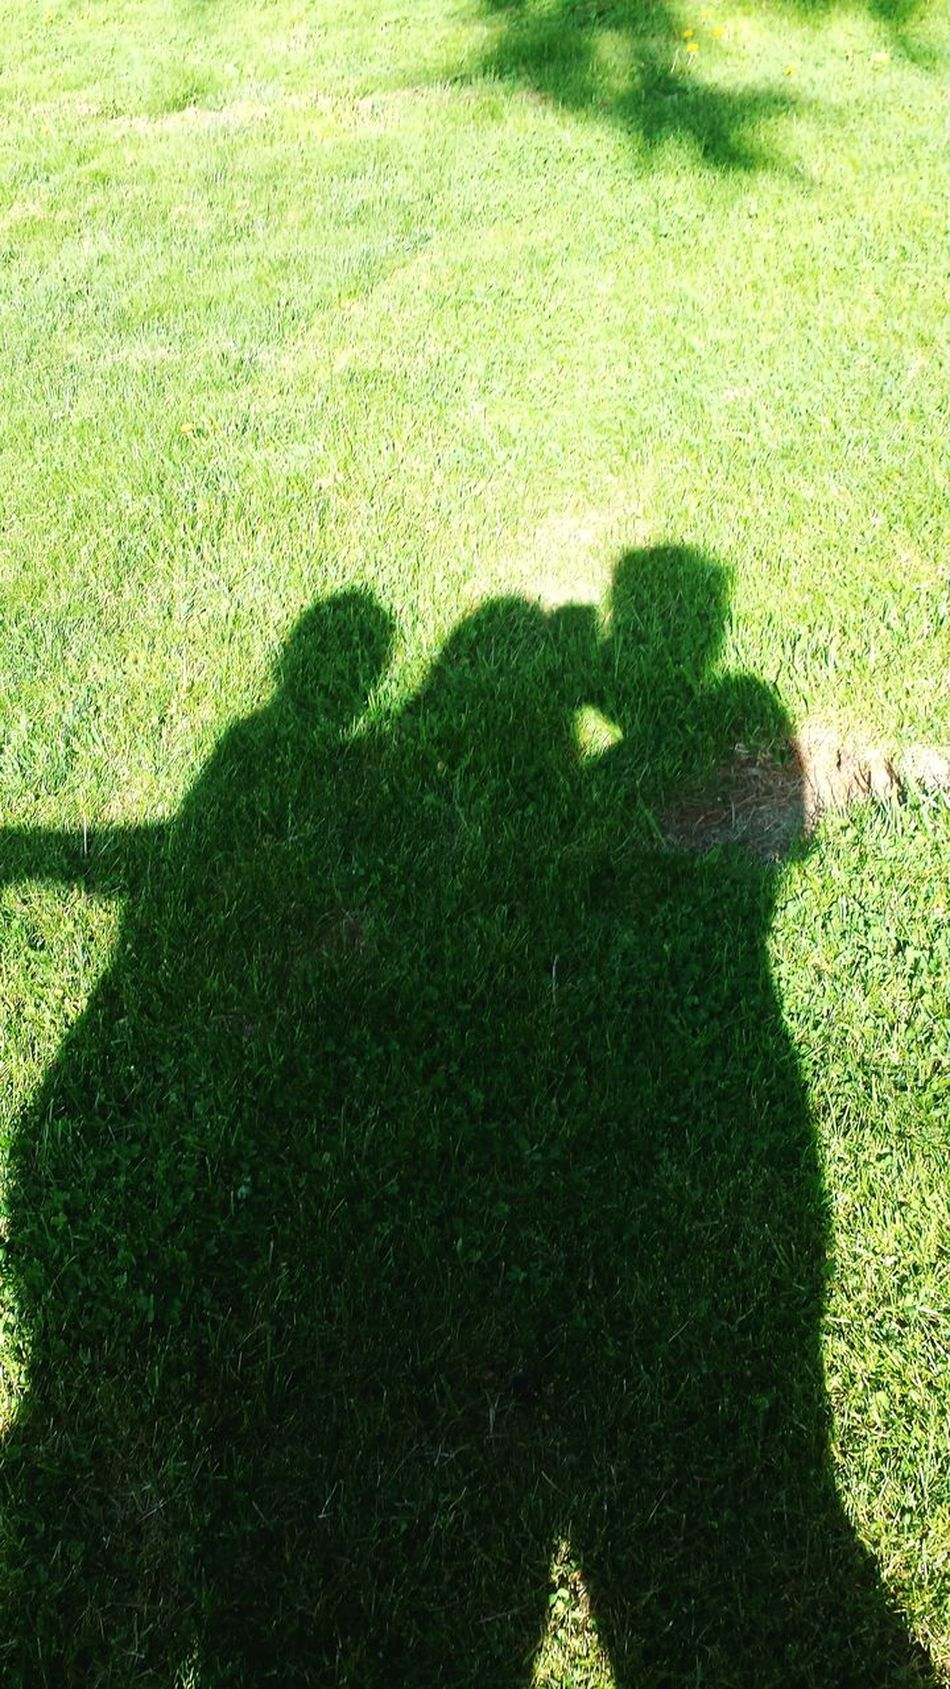 Shadow Three People Focus On Shadow Sunlight Real People Grass Nature Outdoors Day Green Color Forever Friends